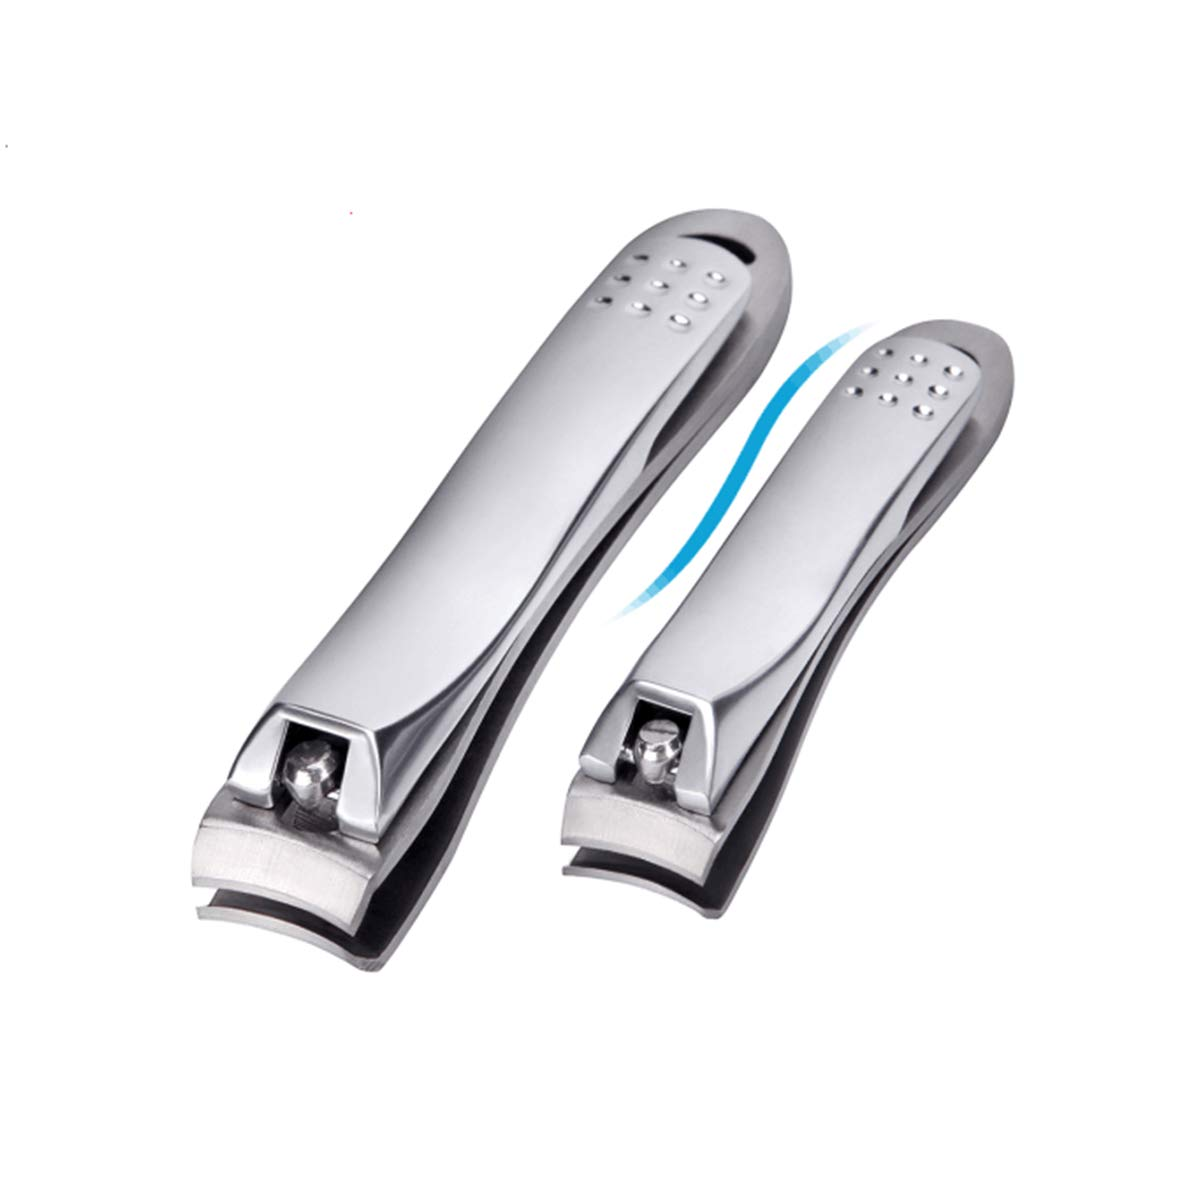 Nail Clippers Set-Stainless Steel Fingernail and Toe nail Clippers Cutter, Nail Clipper for Men and Women, Pumice Stone Callus Remover (3 Pack) LTD